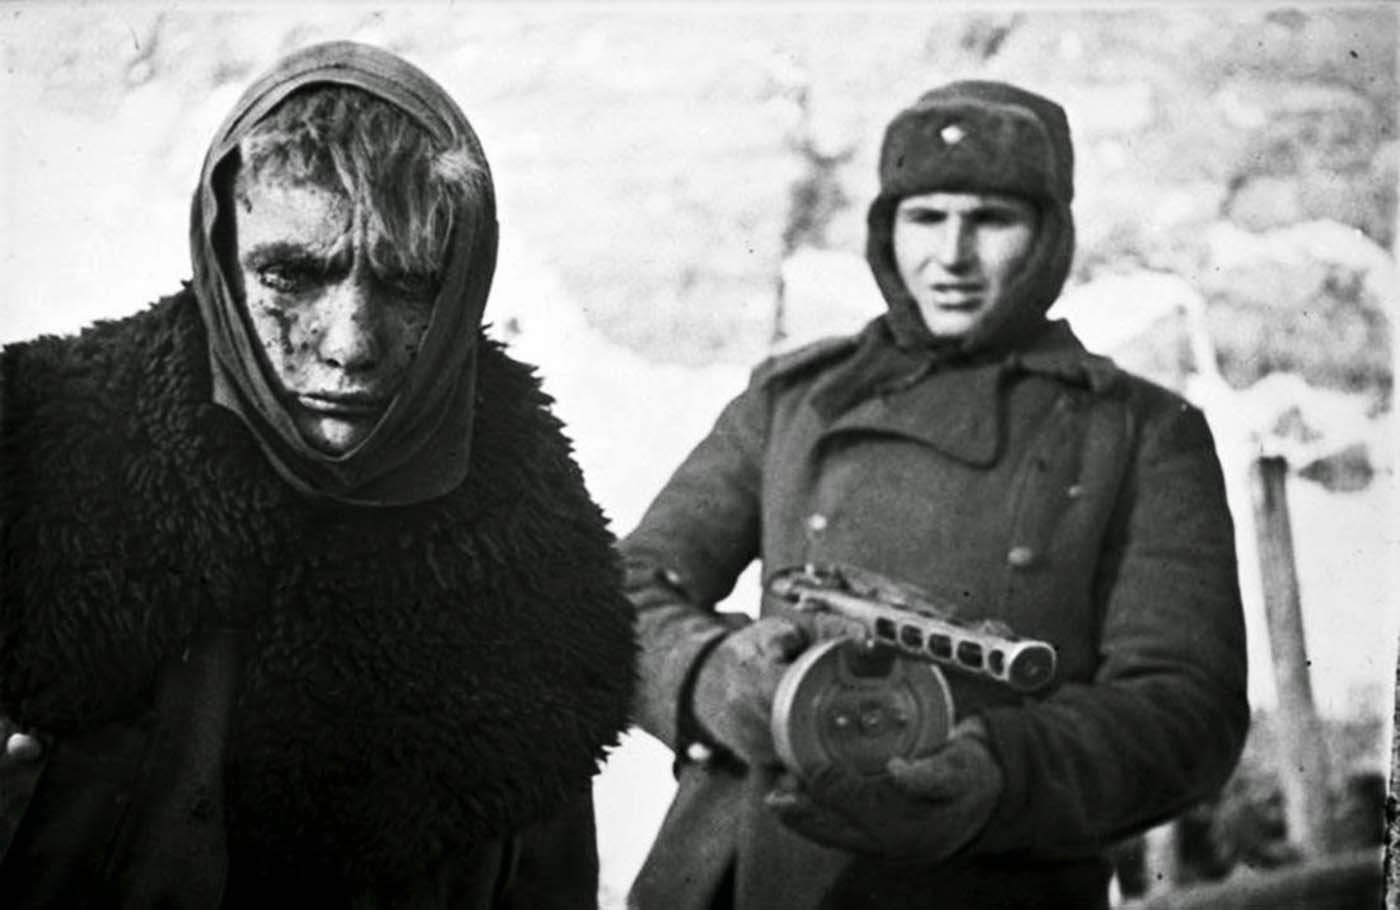 A German prisoner of war escorted by a Soviet soldier with a PPSh-41, 1943.